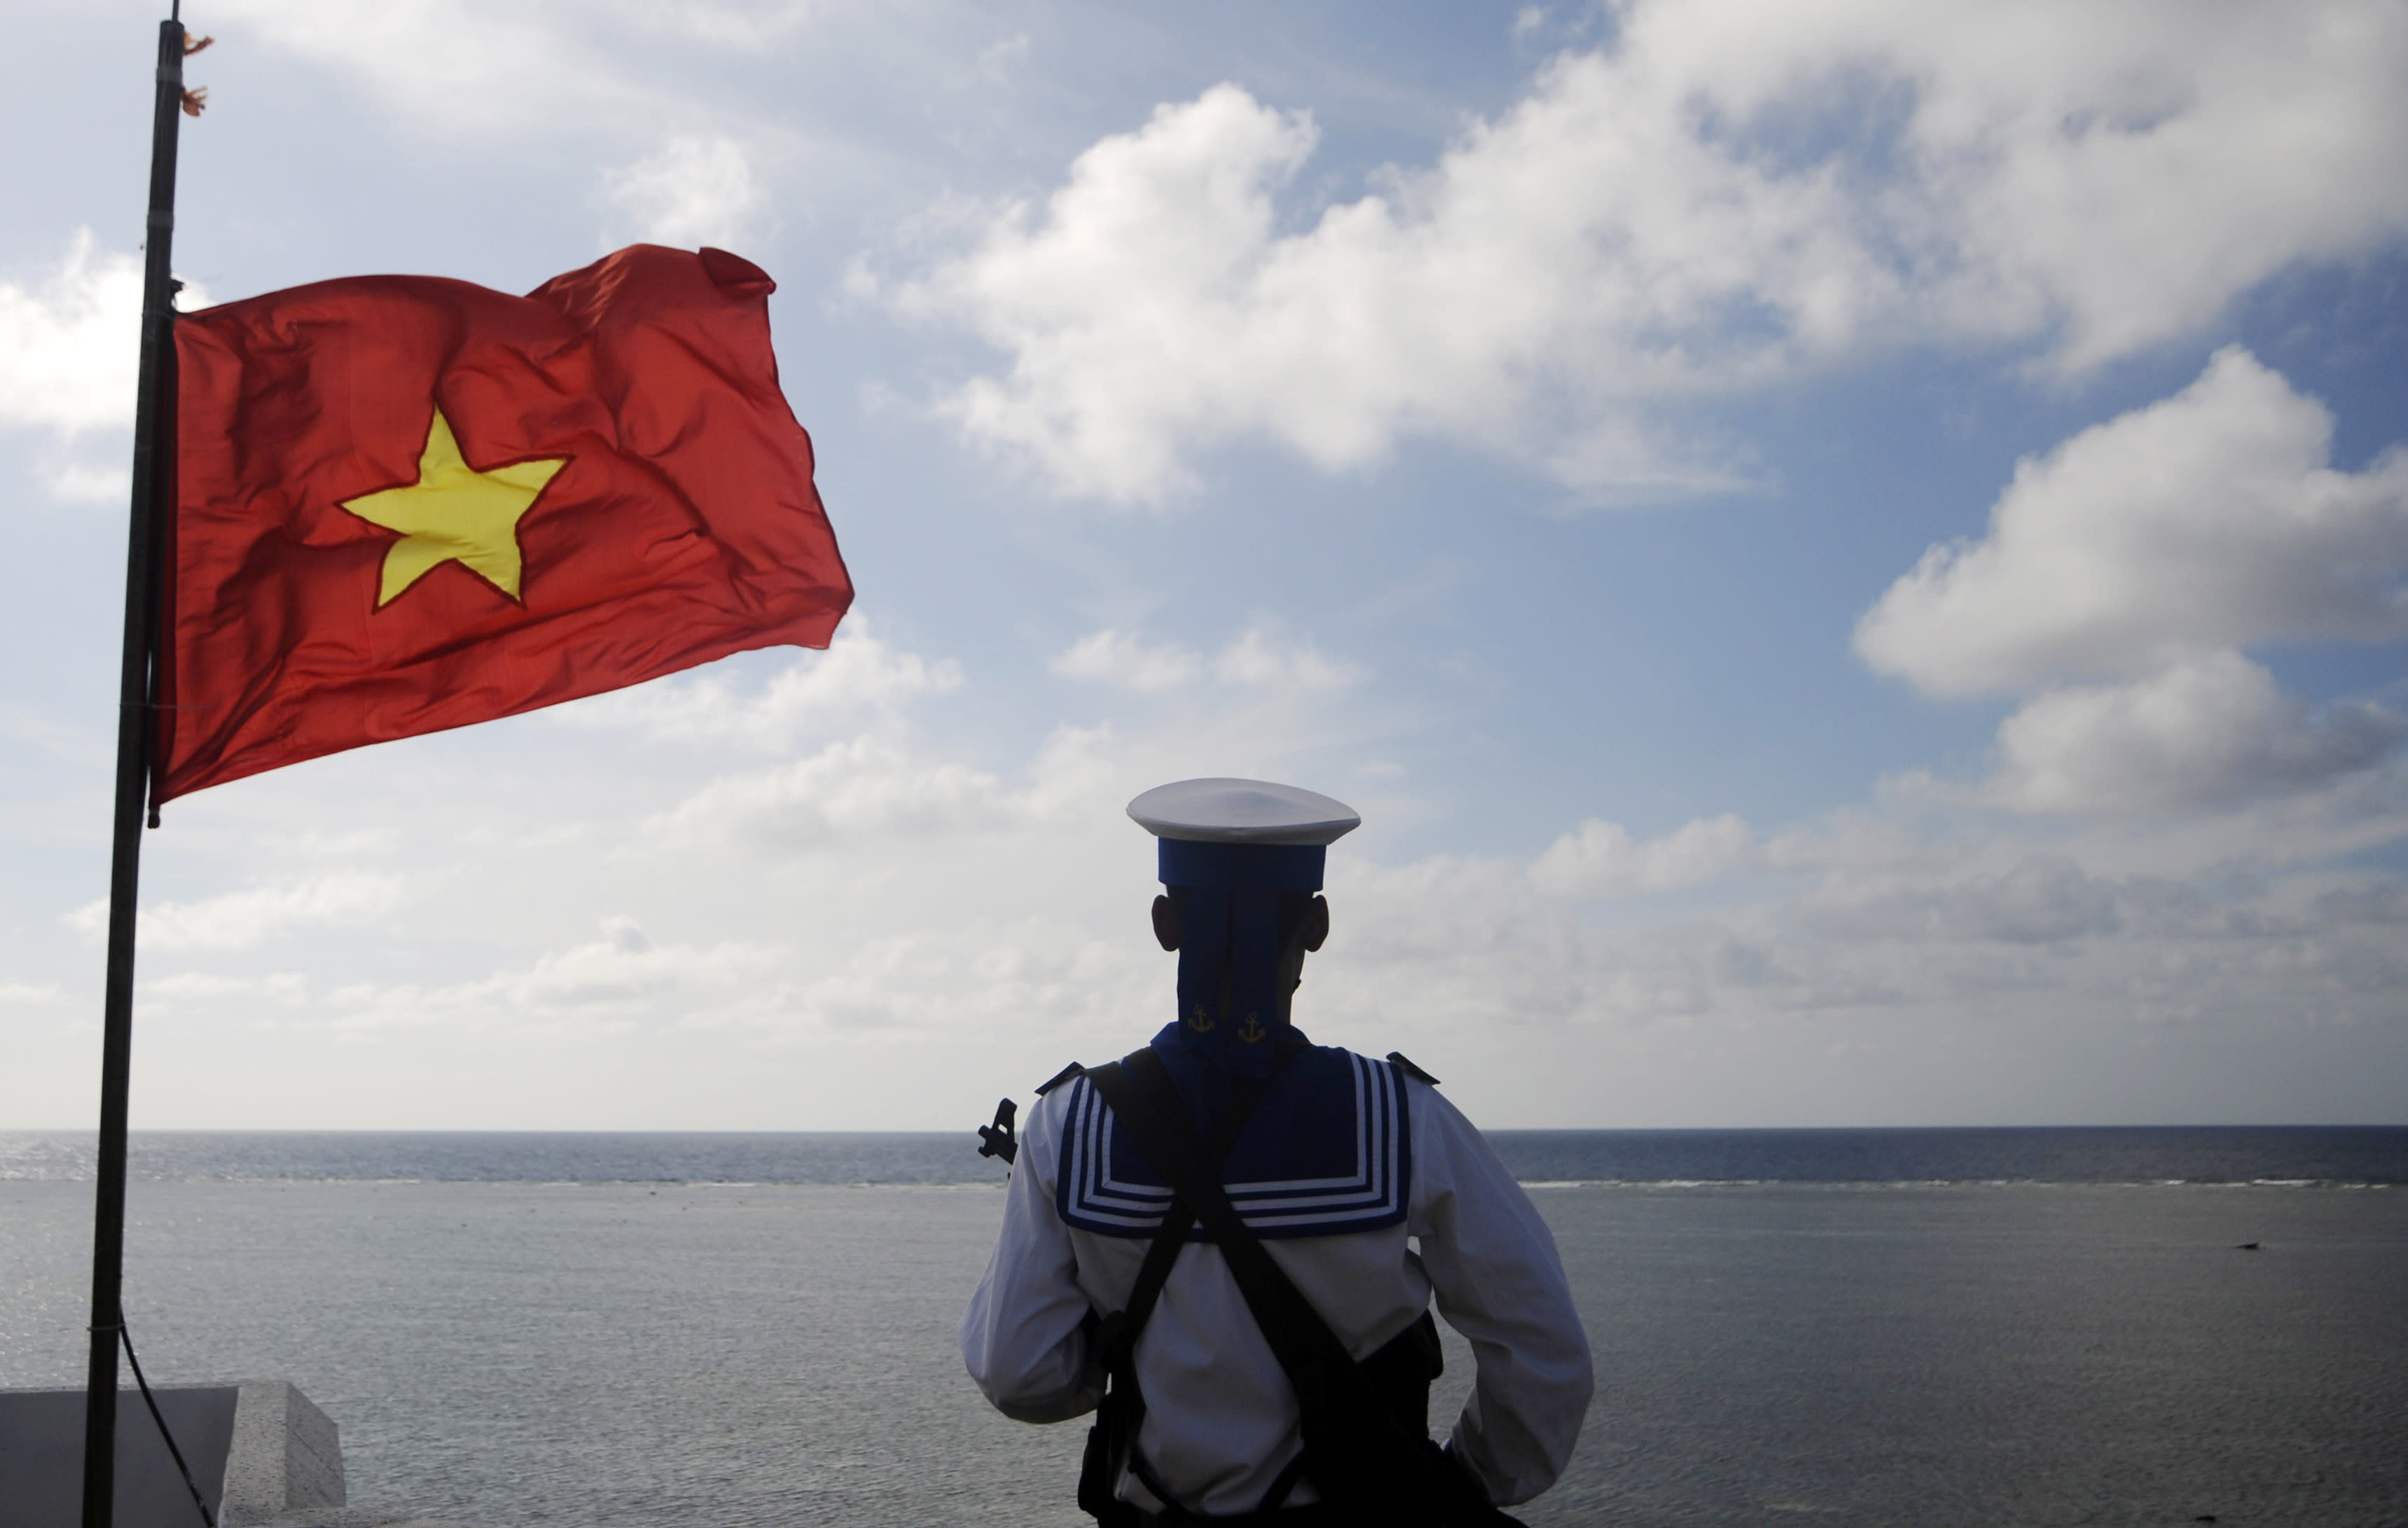 This country could be the next winner in the South China Sea